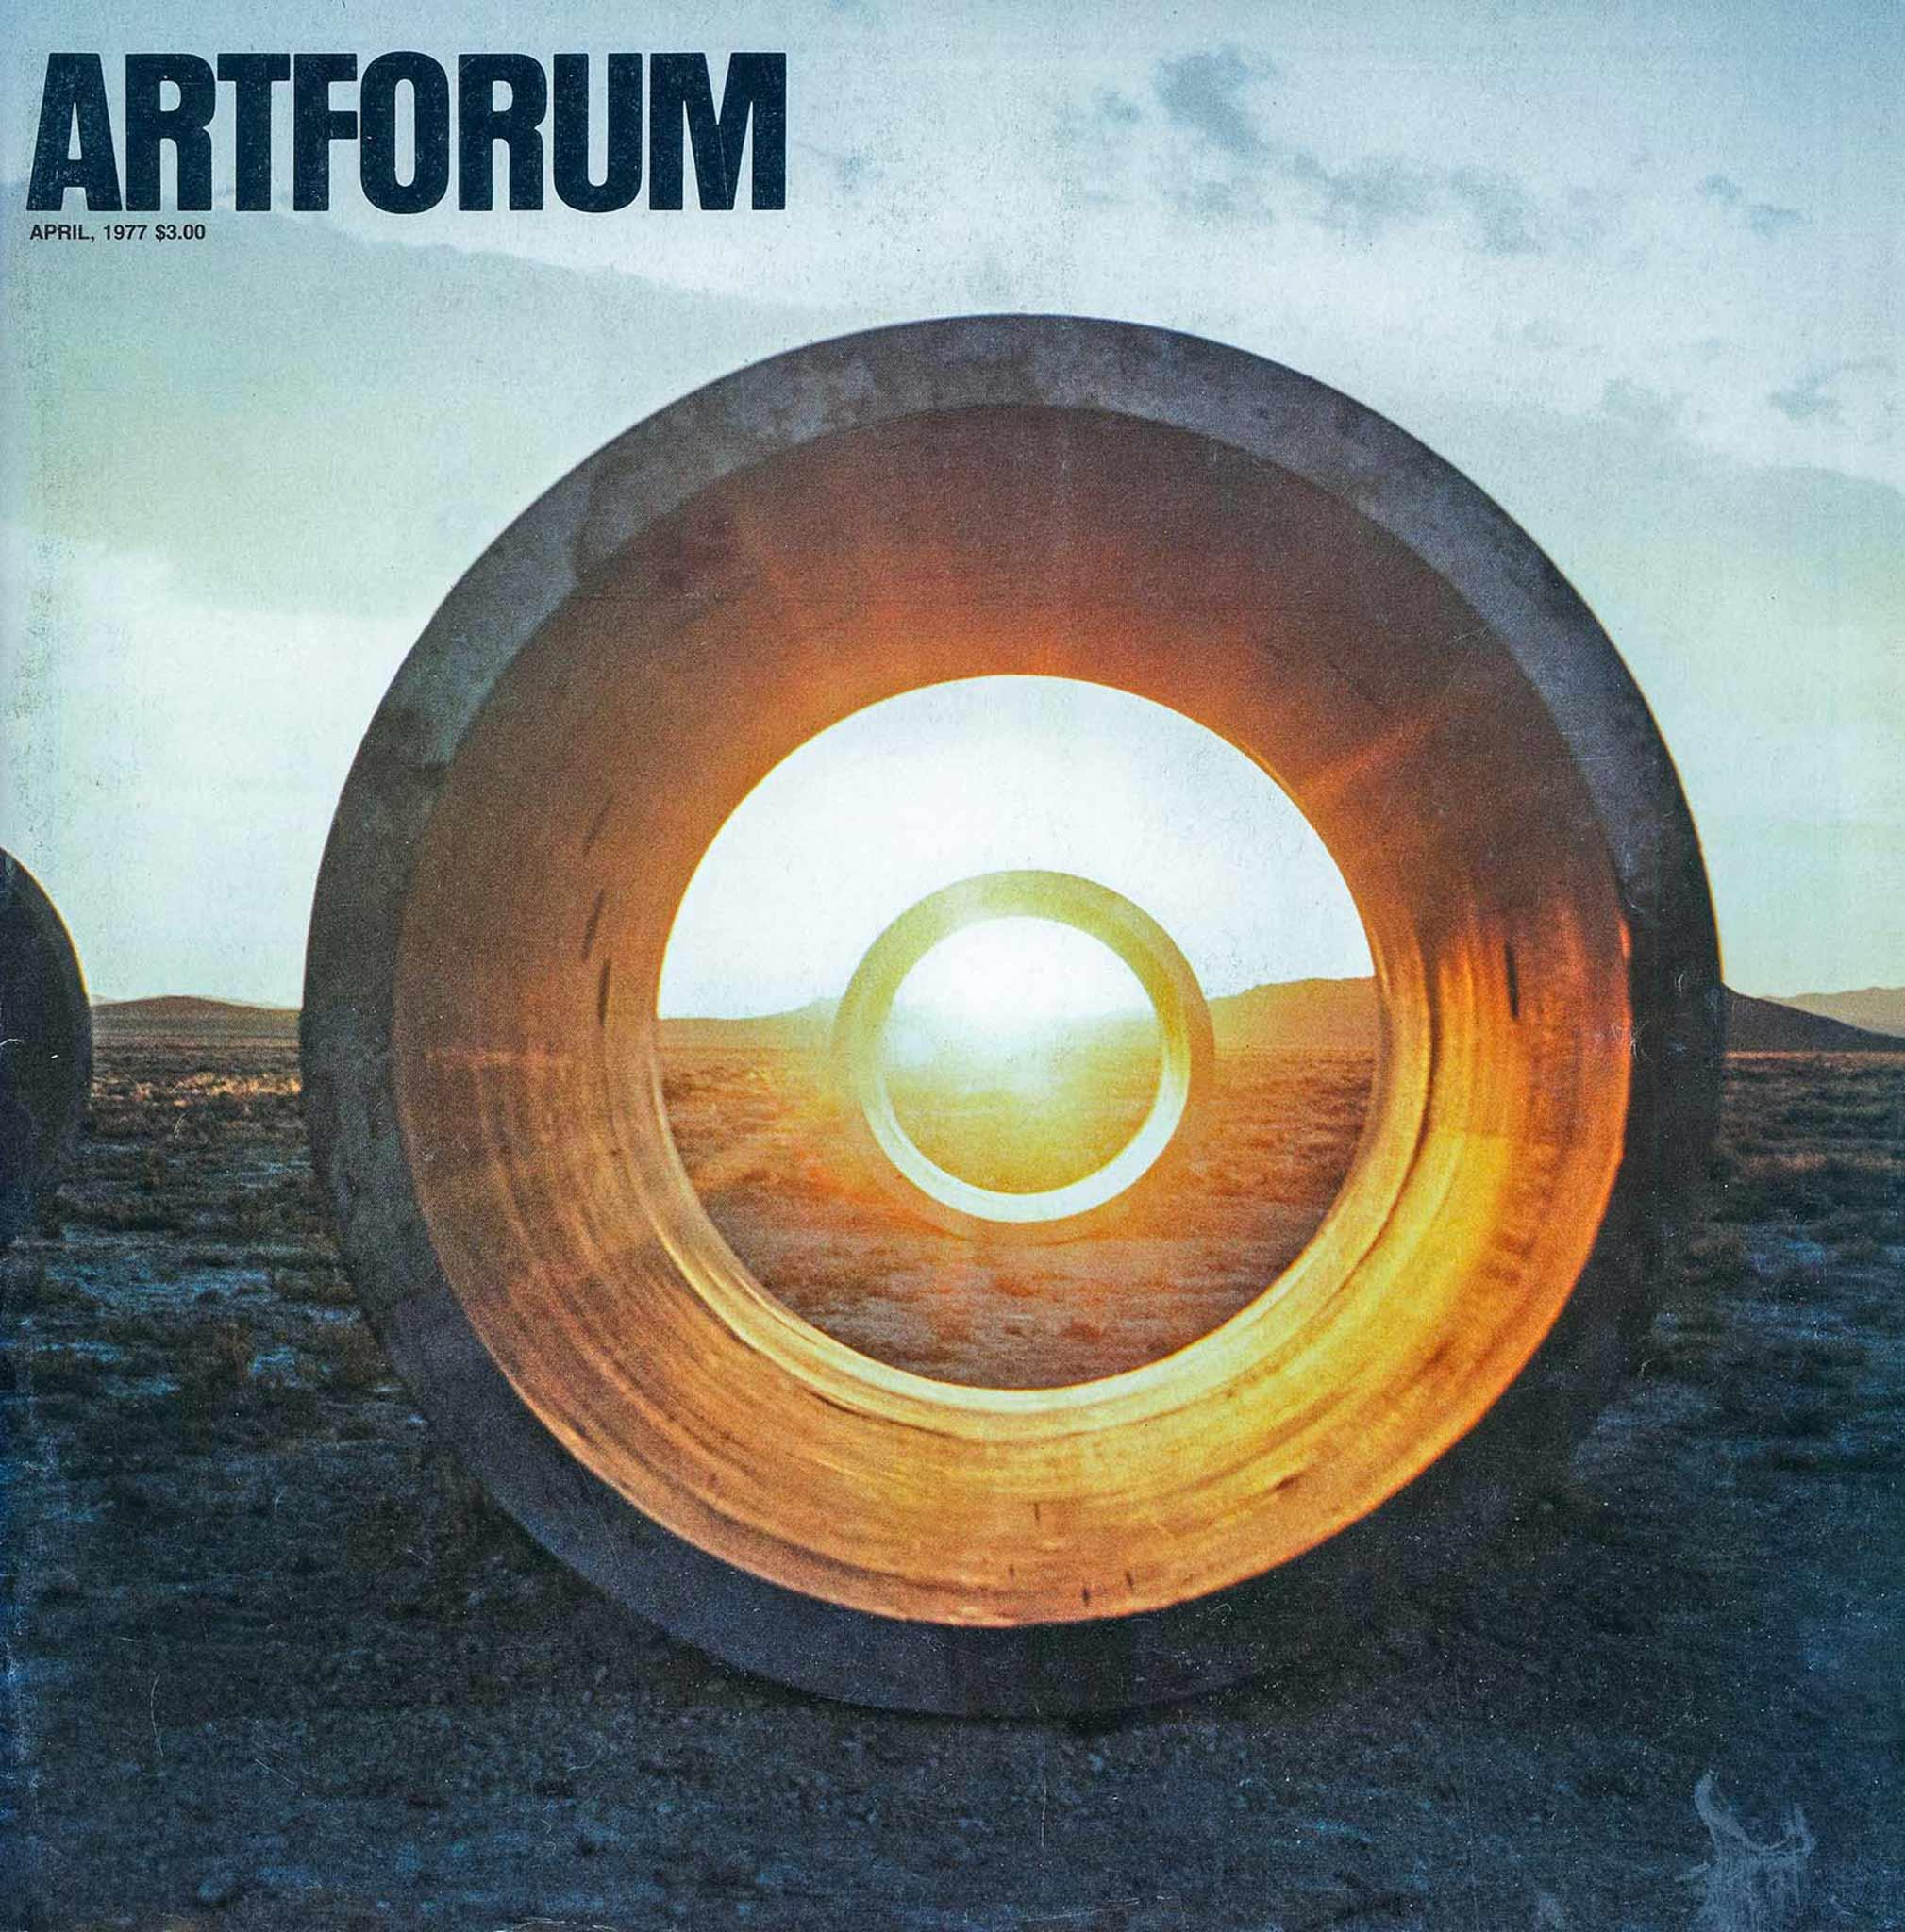 Magazine cover with the artforum logo in black in the upper left corner.  Cover image of two large concrete tunnels in line in the Utah desert, with the sun setting behind the second tunnel.